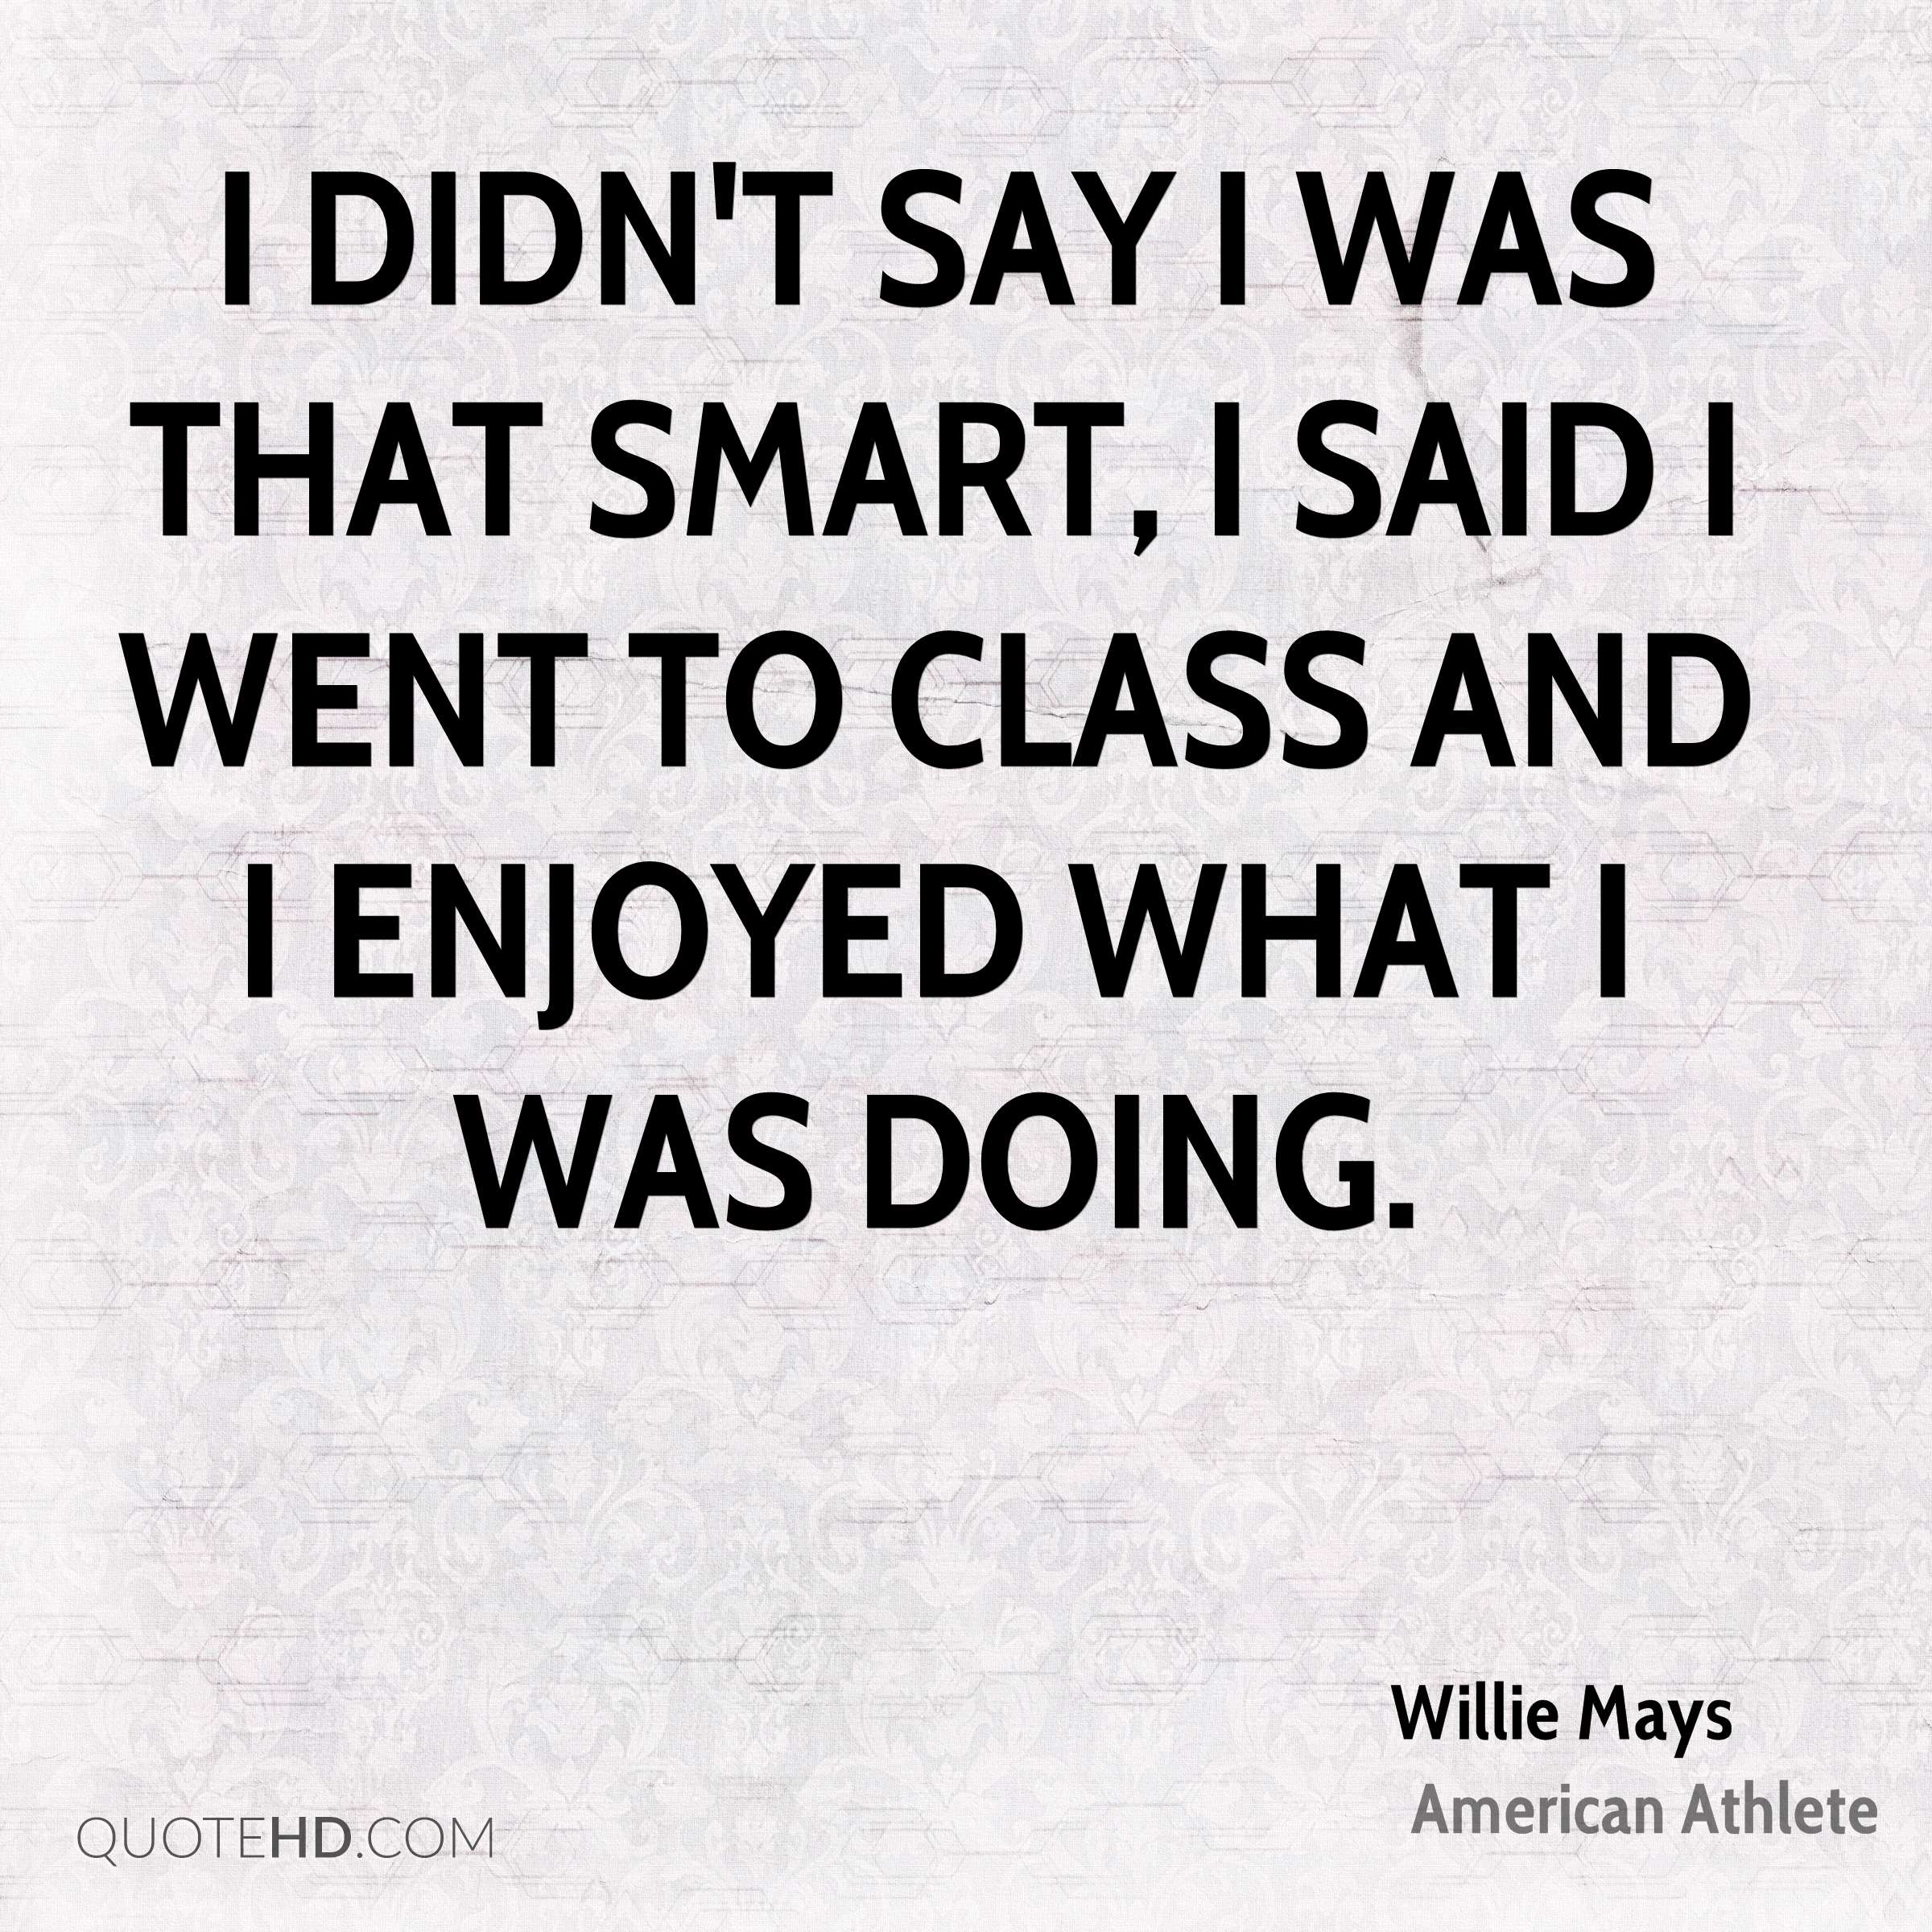 I didn't say I was that smart, I said I went to class and I enjoyed what I was doing.